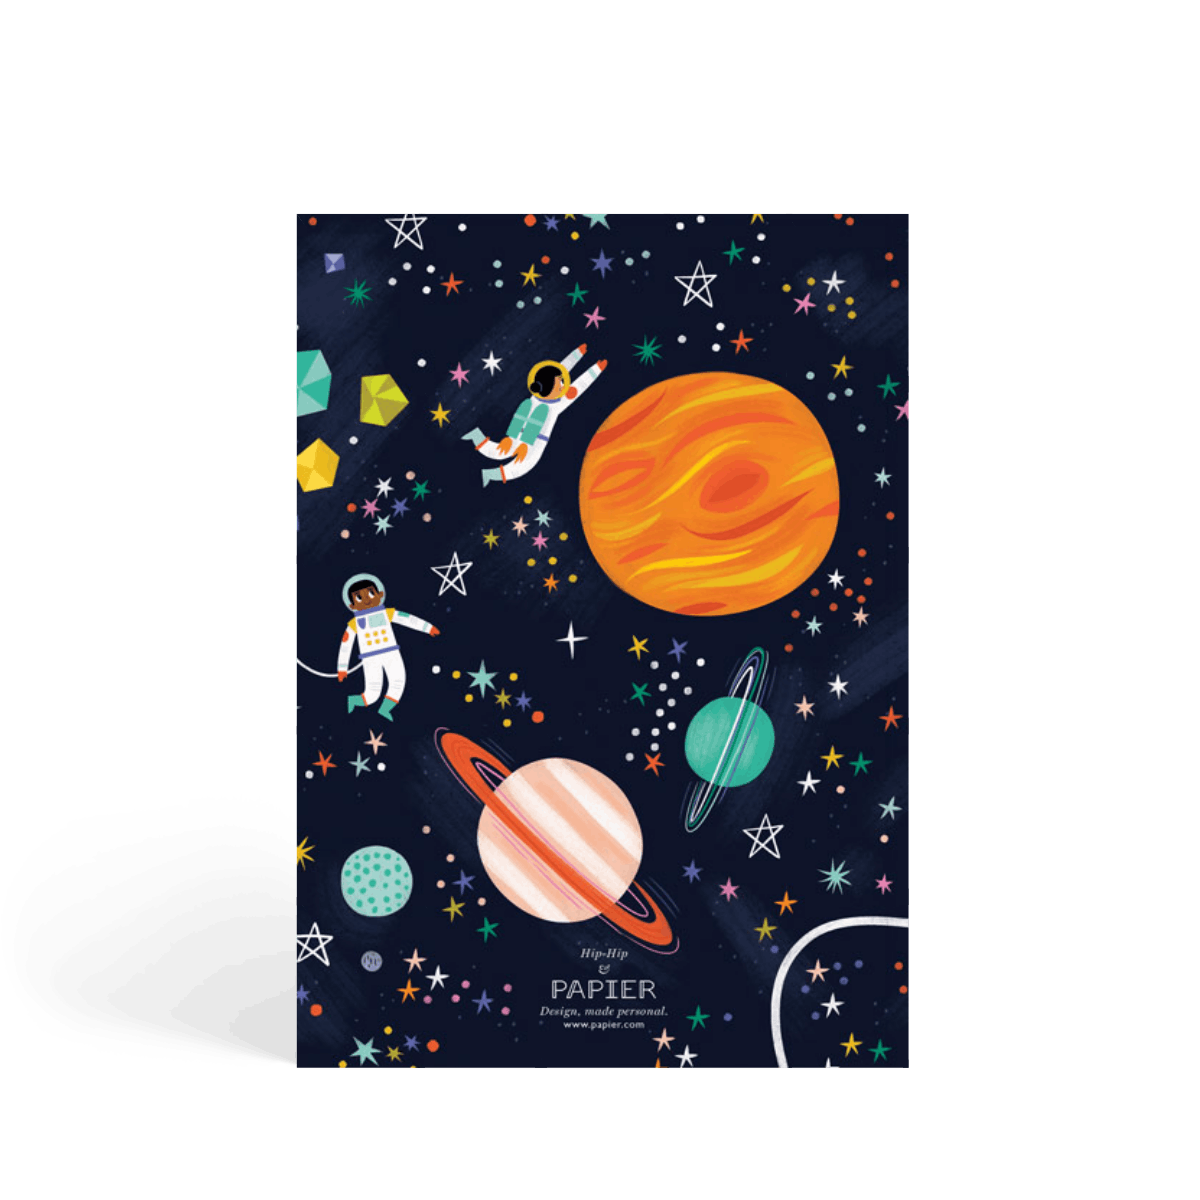 Https%3a%2f%2fwww.papier.com%2fproduct image%2f31682%2f5%2fastronaut girl ii 7959 back 1511526812.png?ixlib=rb 1.1